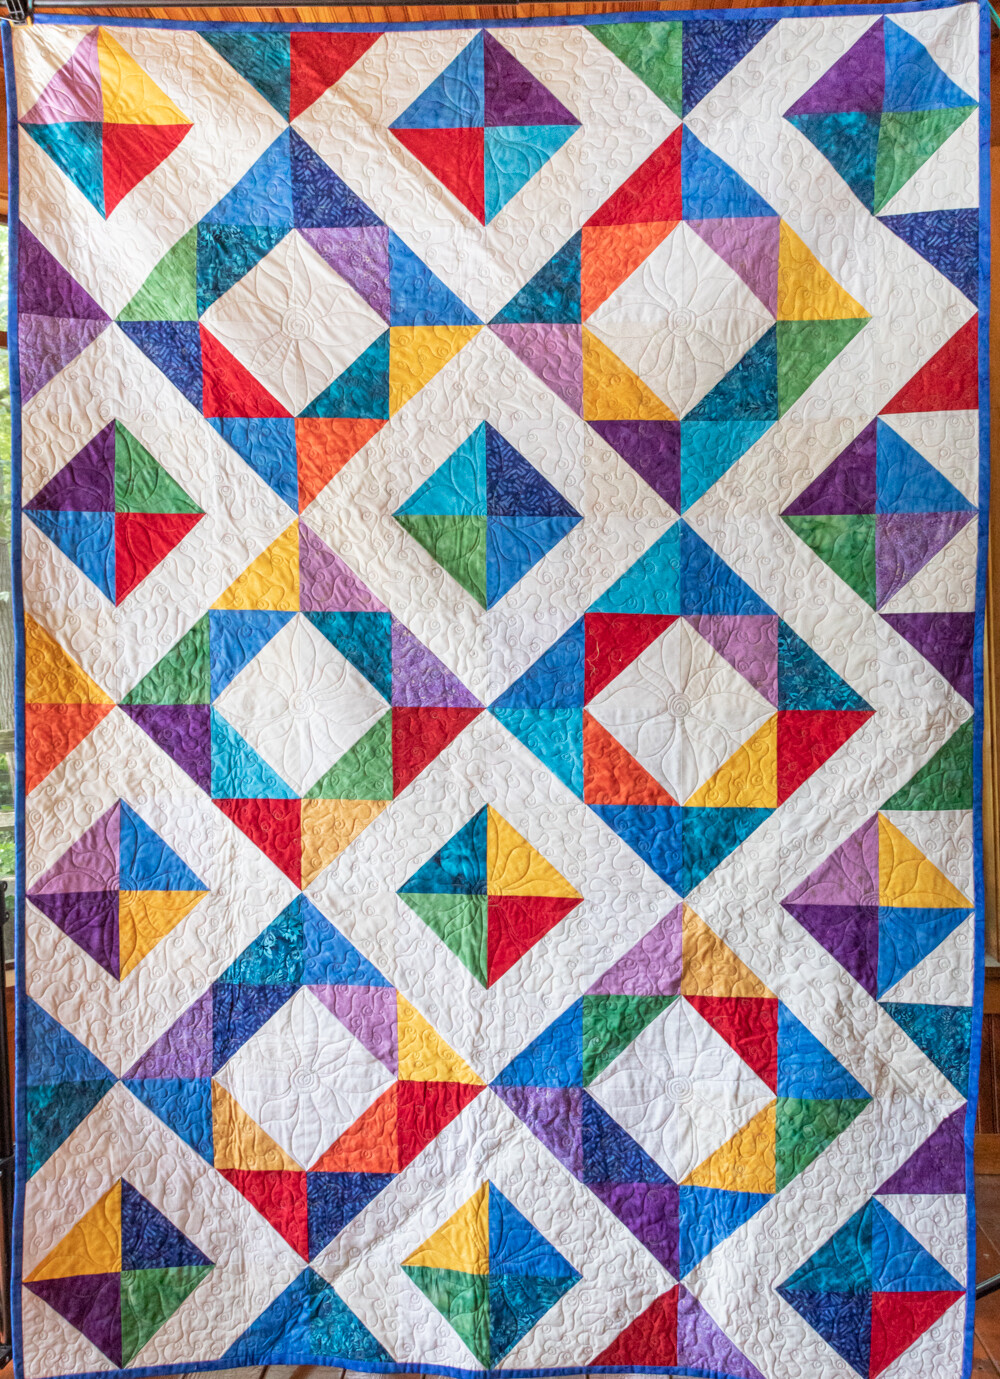 Quilt #40 - Shadow Box